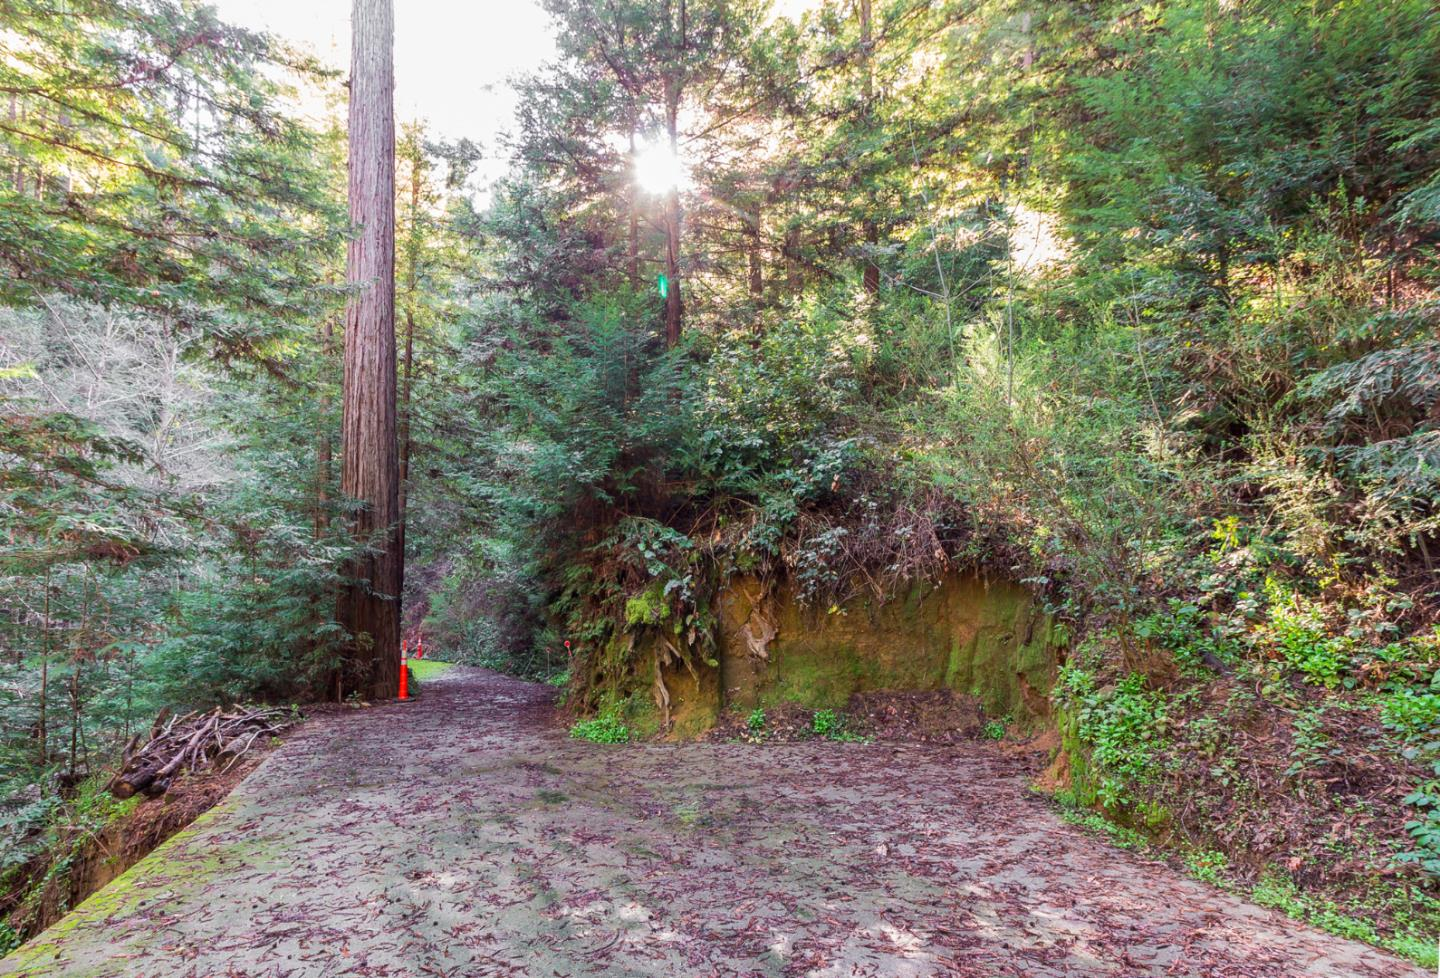 Land for Sale at 10833 Highway 9 10833 Highway 9 Brookdale, California 95007 United States